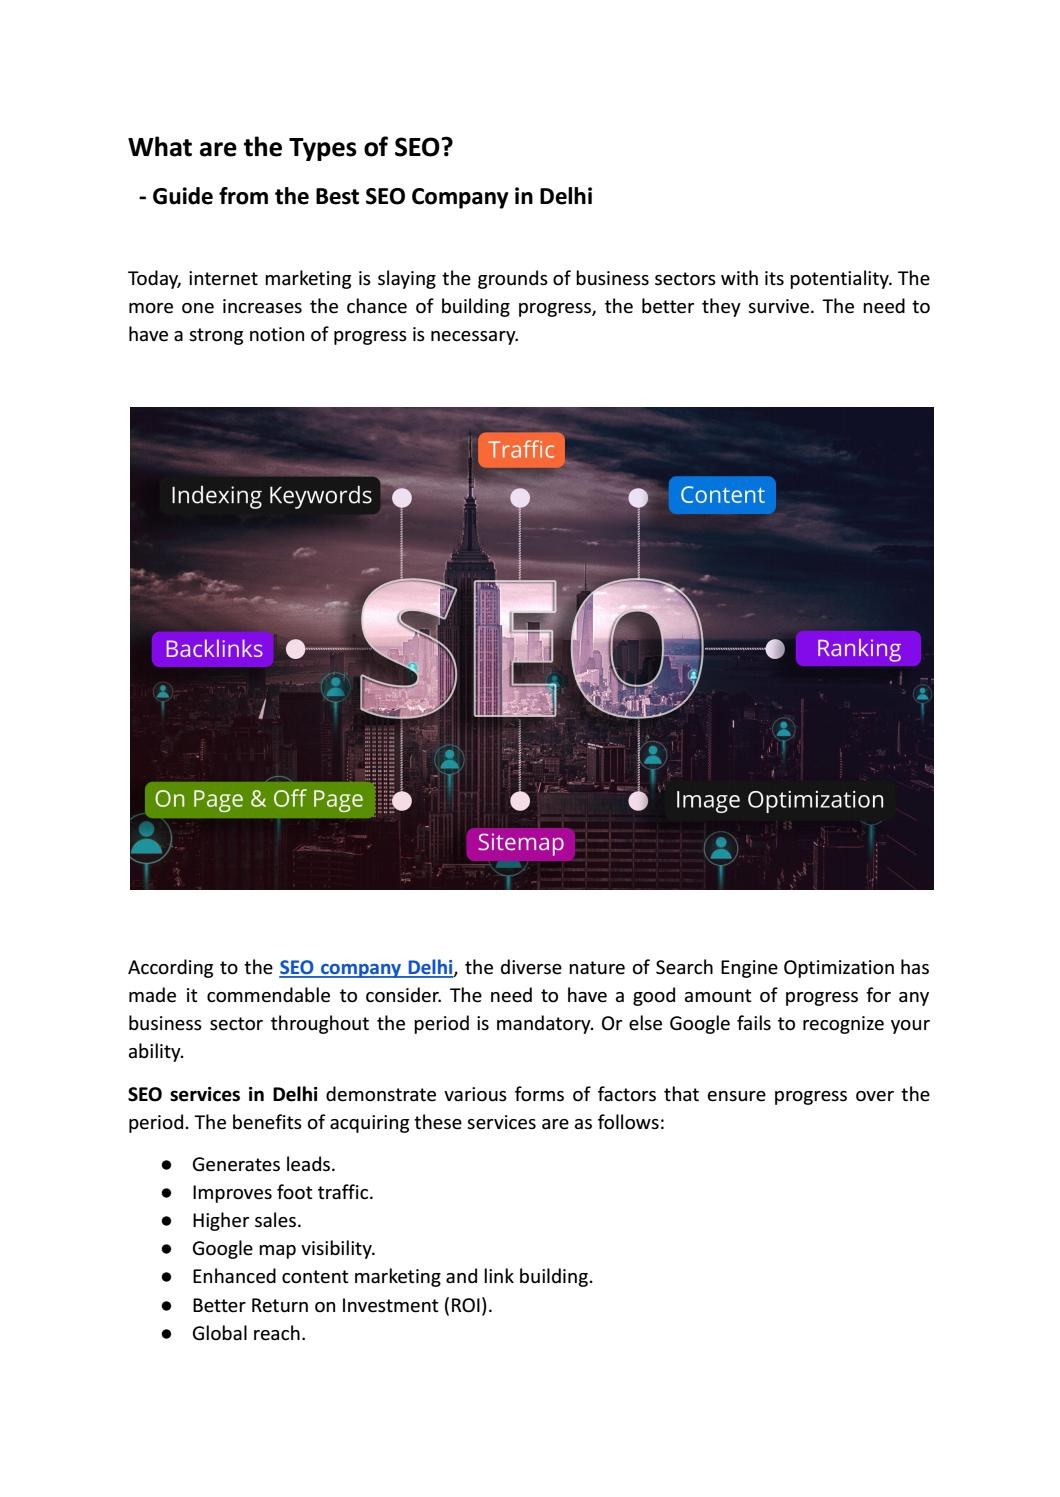 What are the Types of SEO?